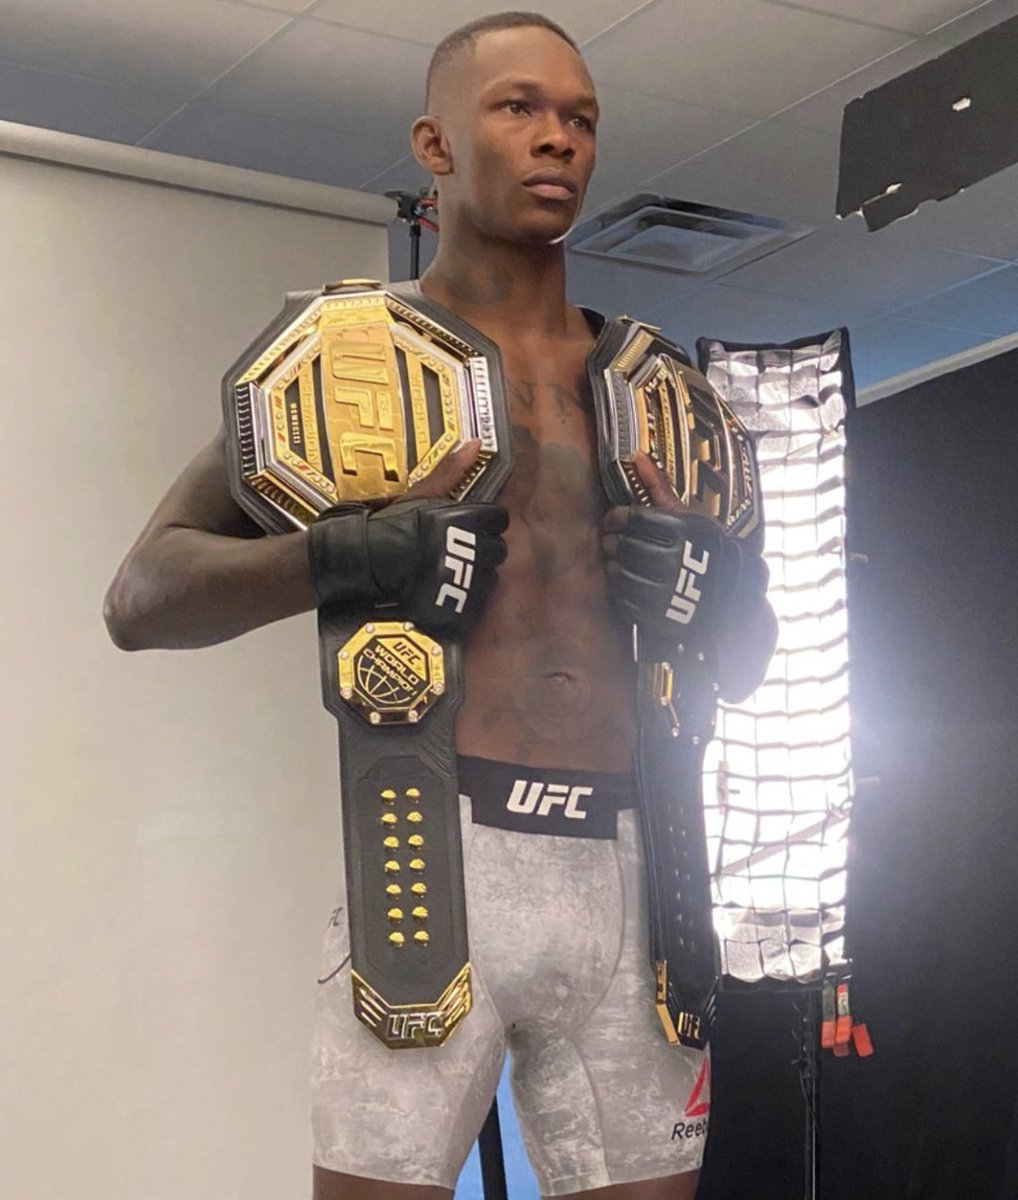 An early look at Israel Adesanya with two UFC championship belts 🏆 🏆 #UFC259 (via IG/timsimpson)